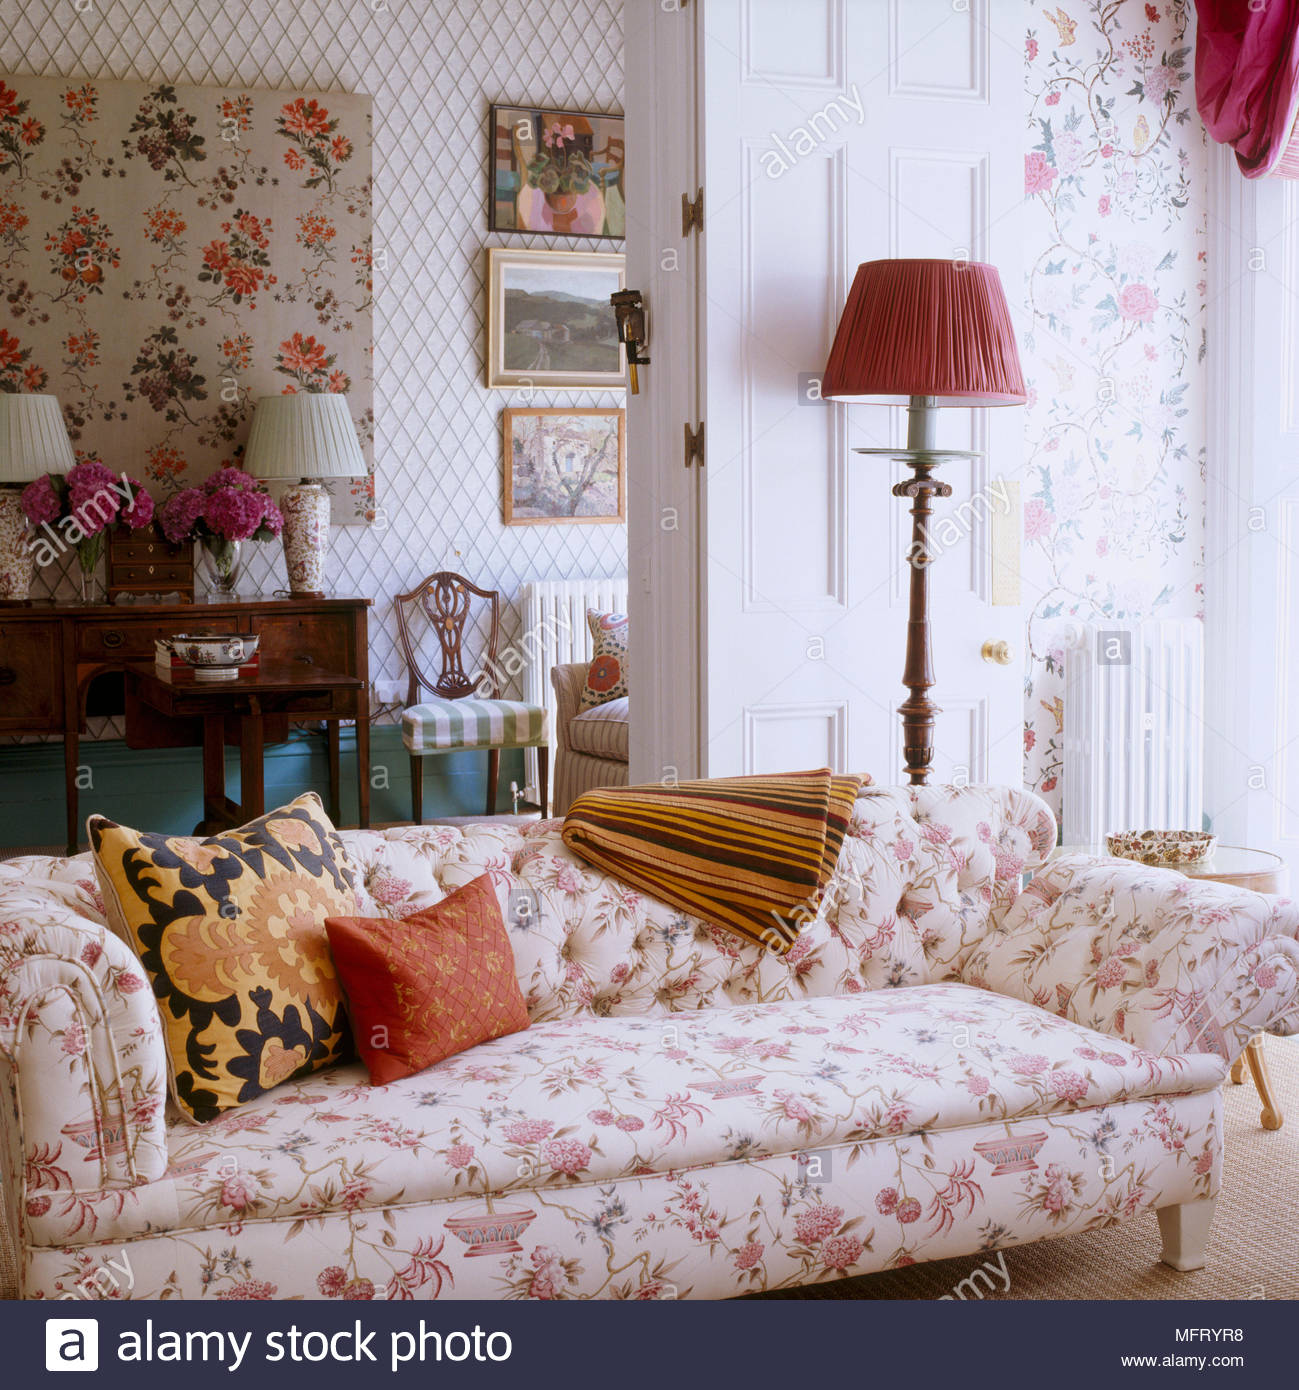 Sitting room with pink floral wallpaper upholstered sofa lamps 1299x1390